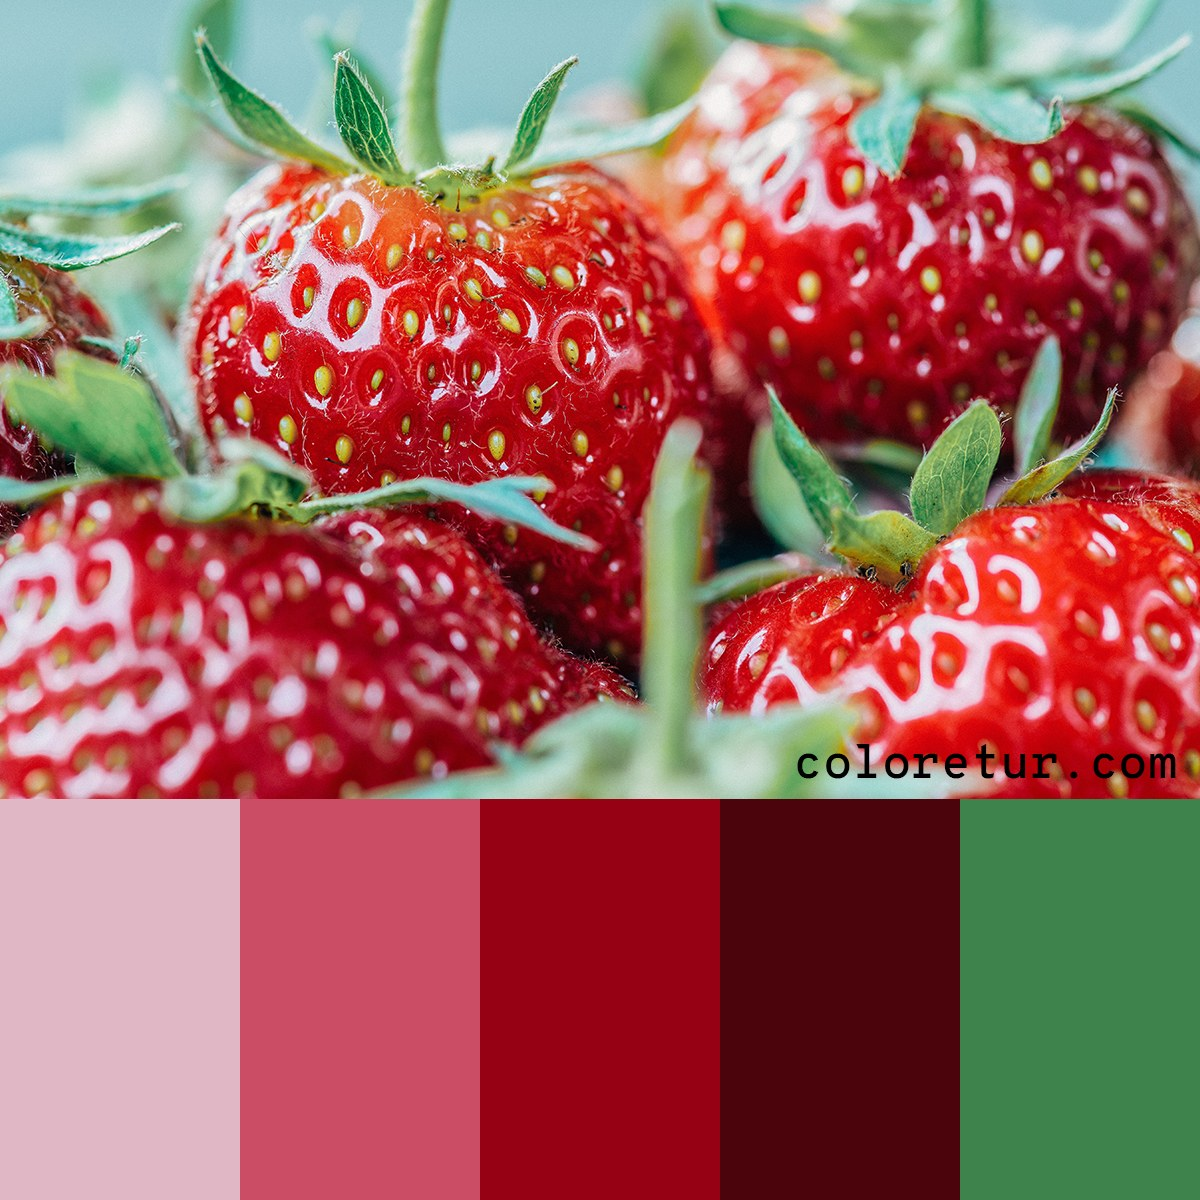 A refreshing palette resembling strawberries